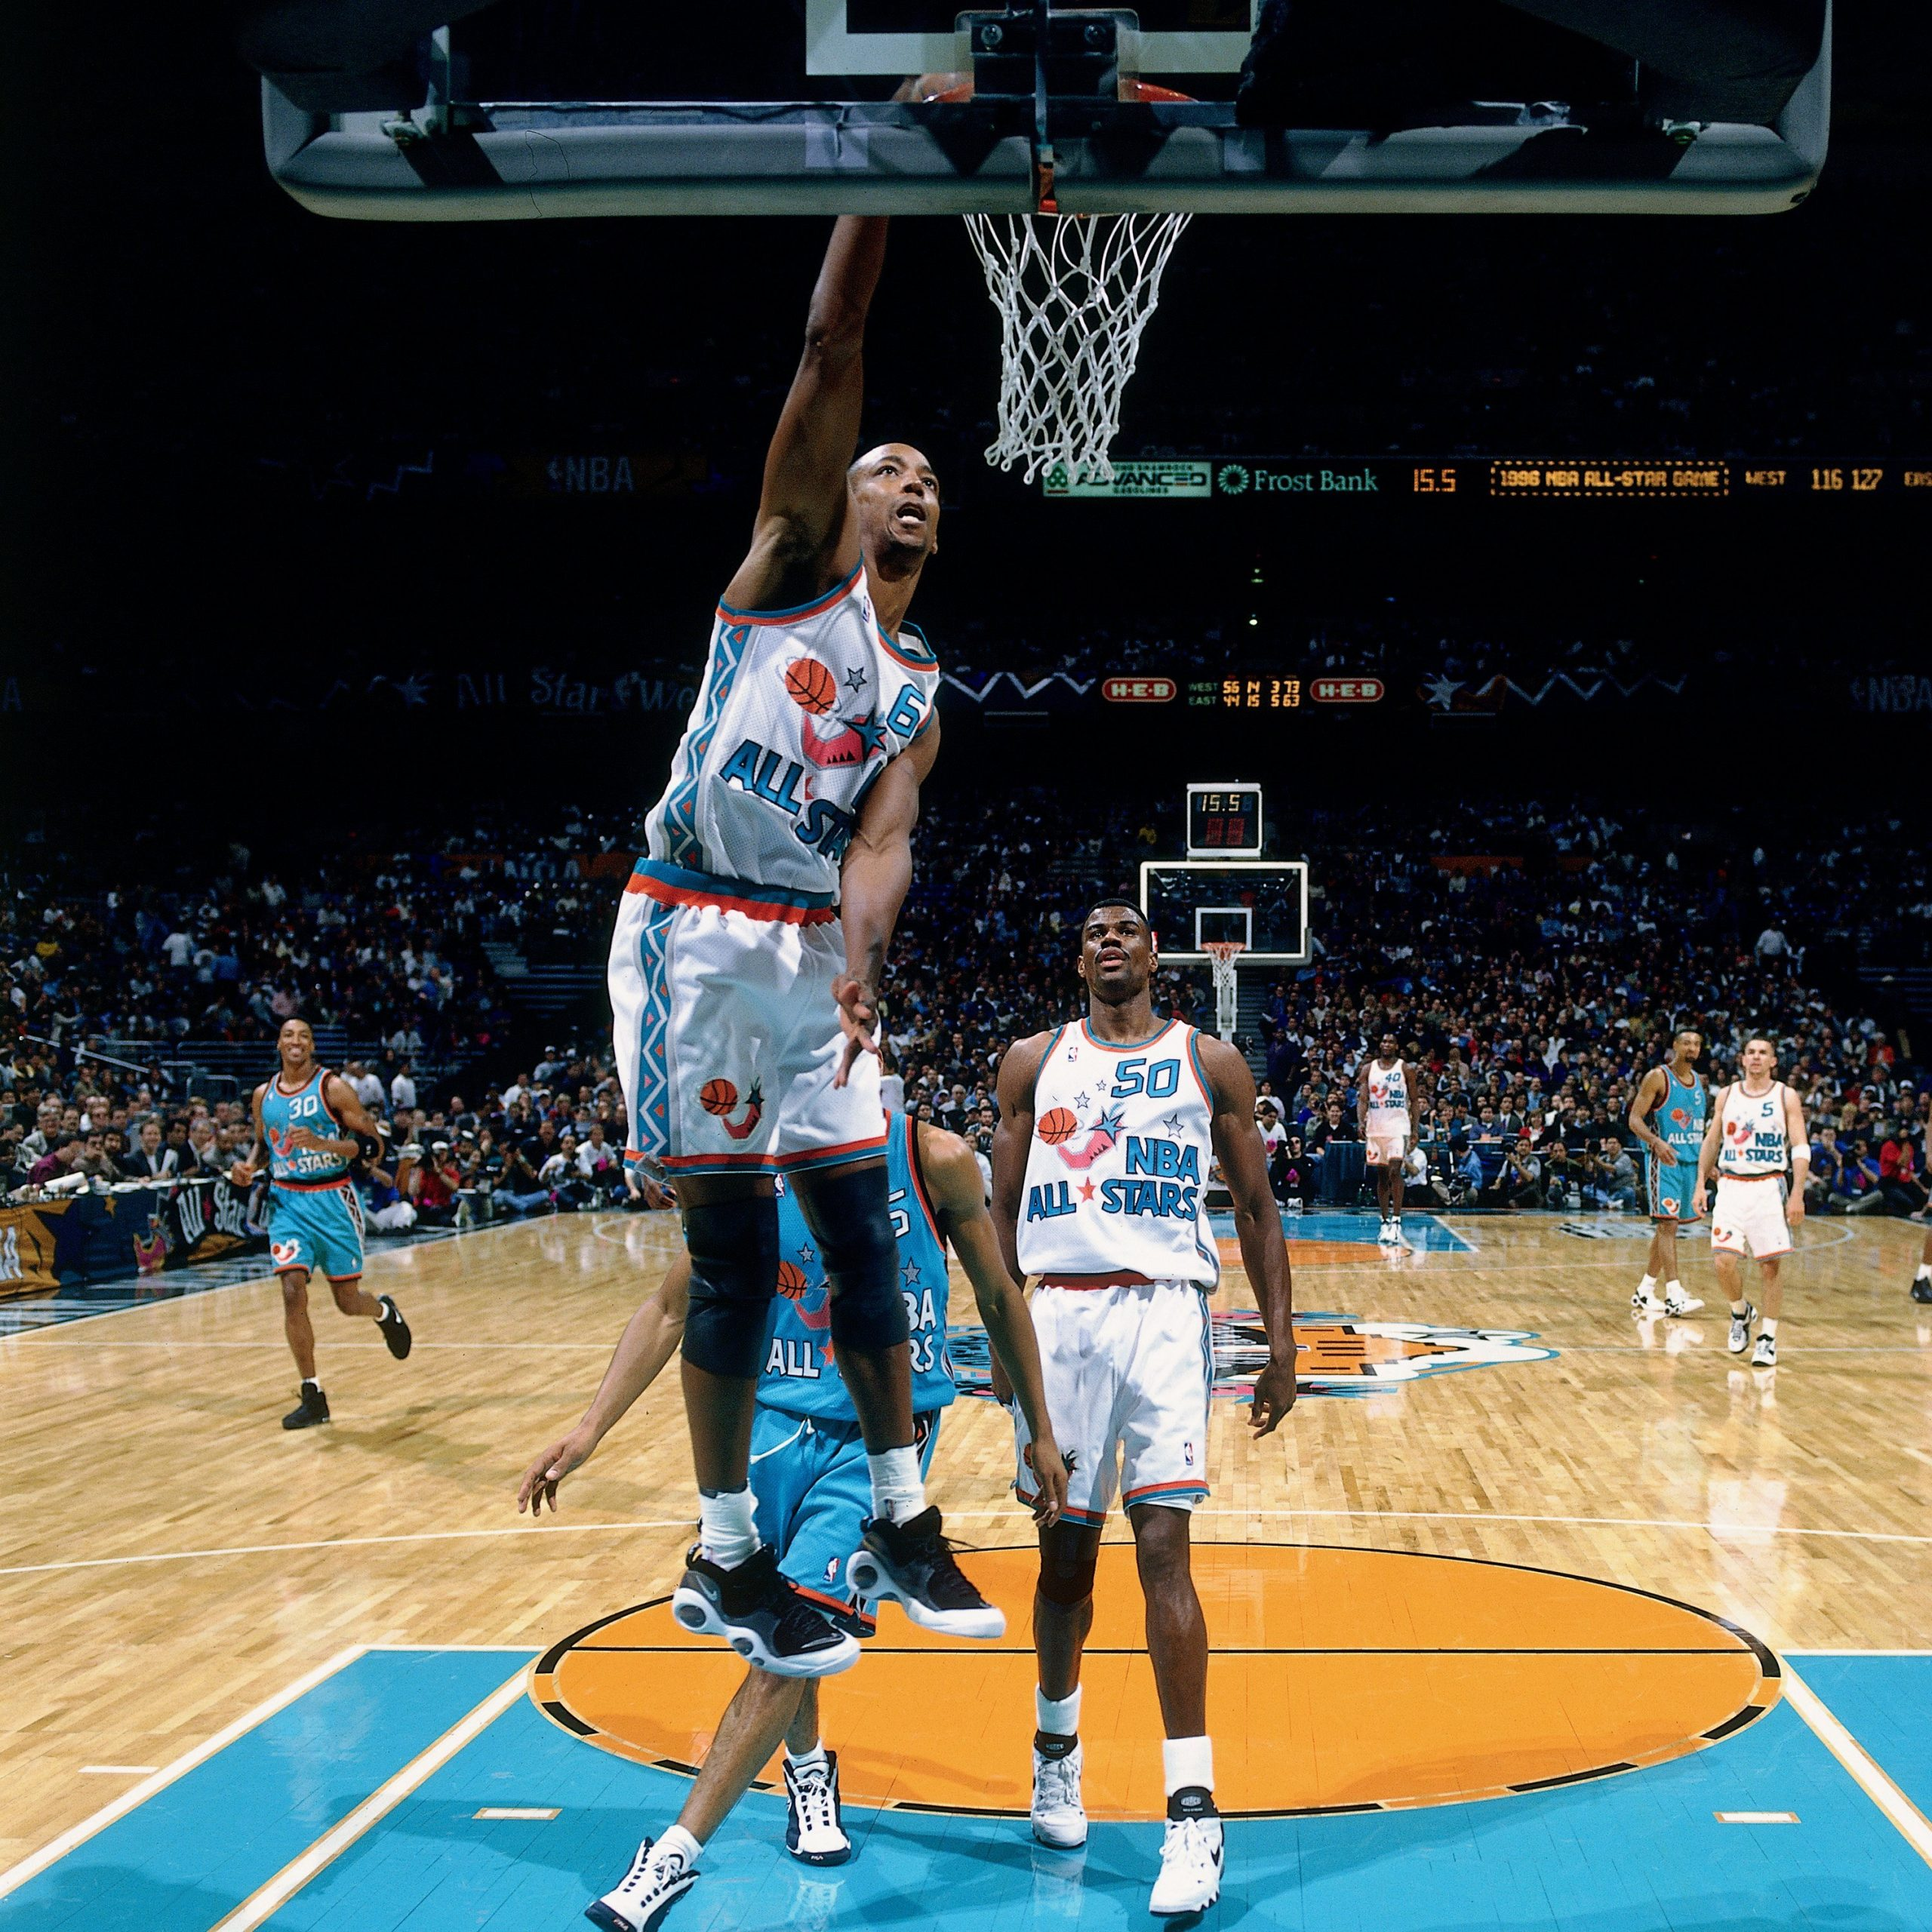 Sean Elliott, #6 of the Western Conference All Stars, dunks against the Eastern Conference during the 1996 NBA All Star Game at the Alamodome. Photo courtesy of San Antonio Spurs.